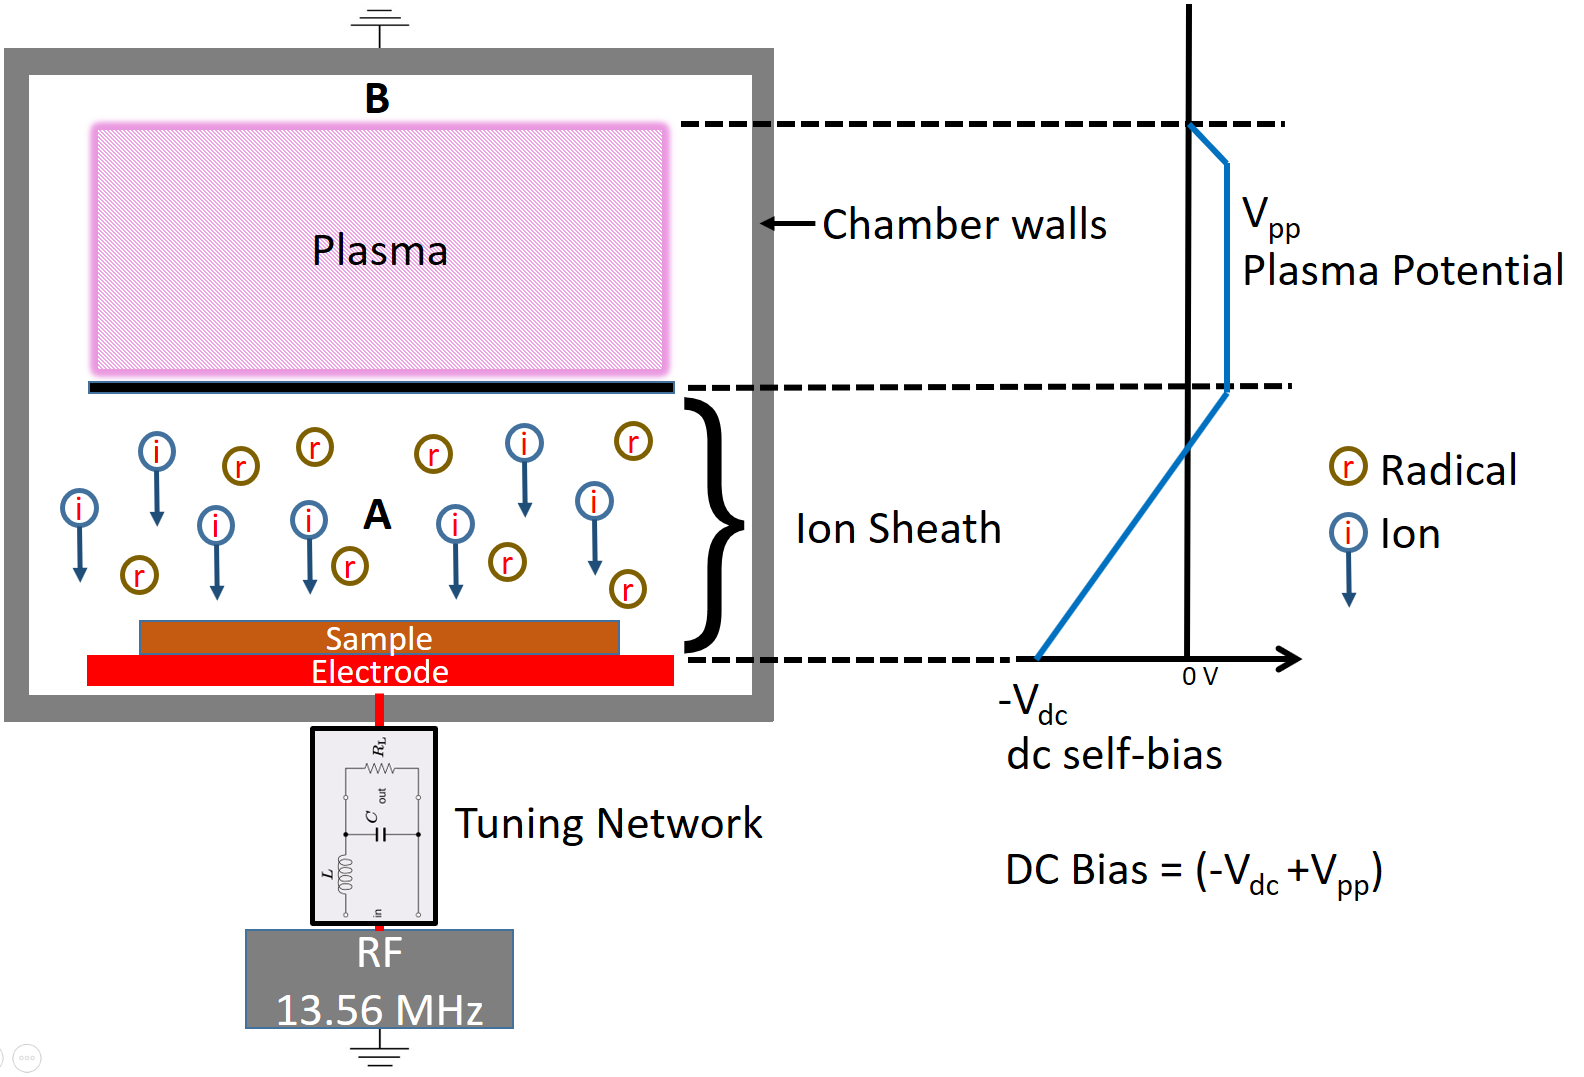 The Importance Of Dc Self Bias Voltage In Plasma Applications